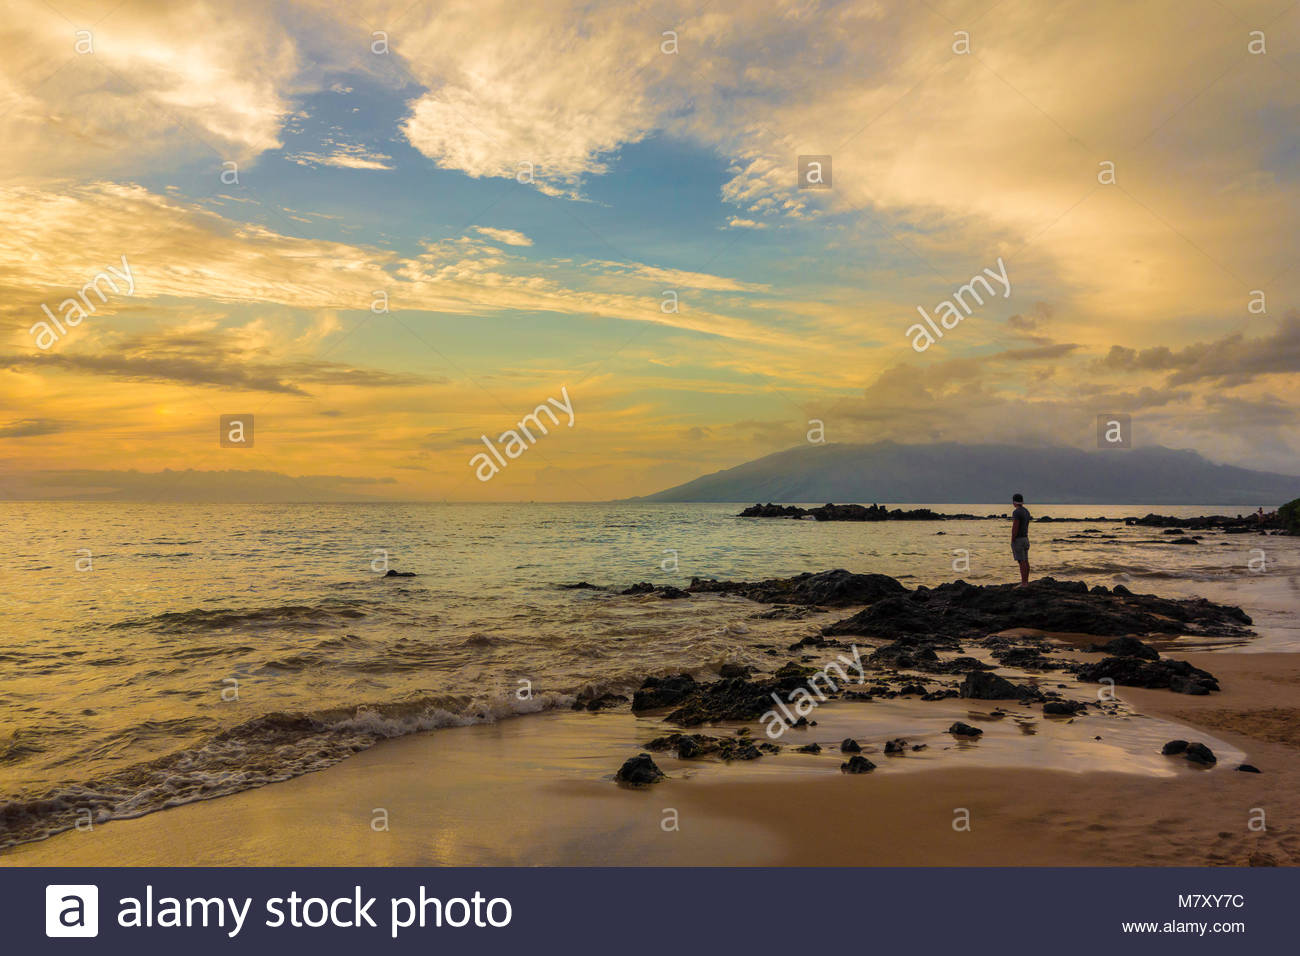 Tropical sunset at Kamaole Beach Park 3 on the beach and Pacific Ocean on the island of Maui in the state of Hawaii - Stock Image